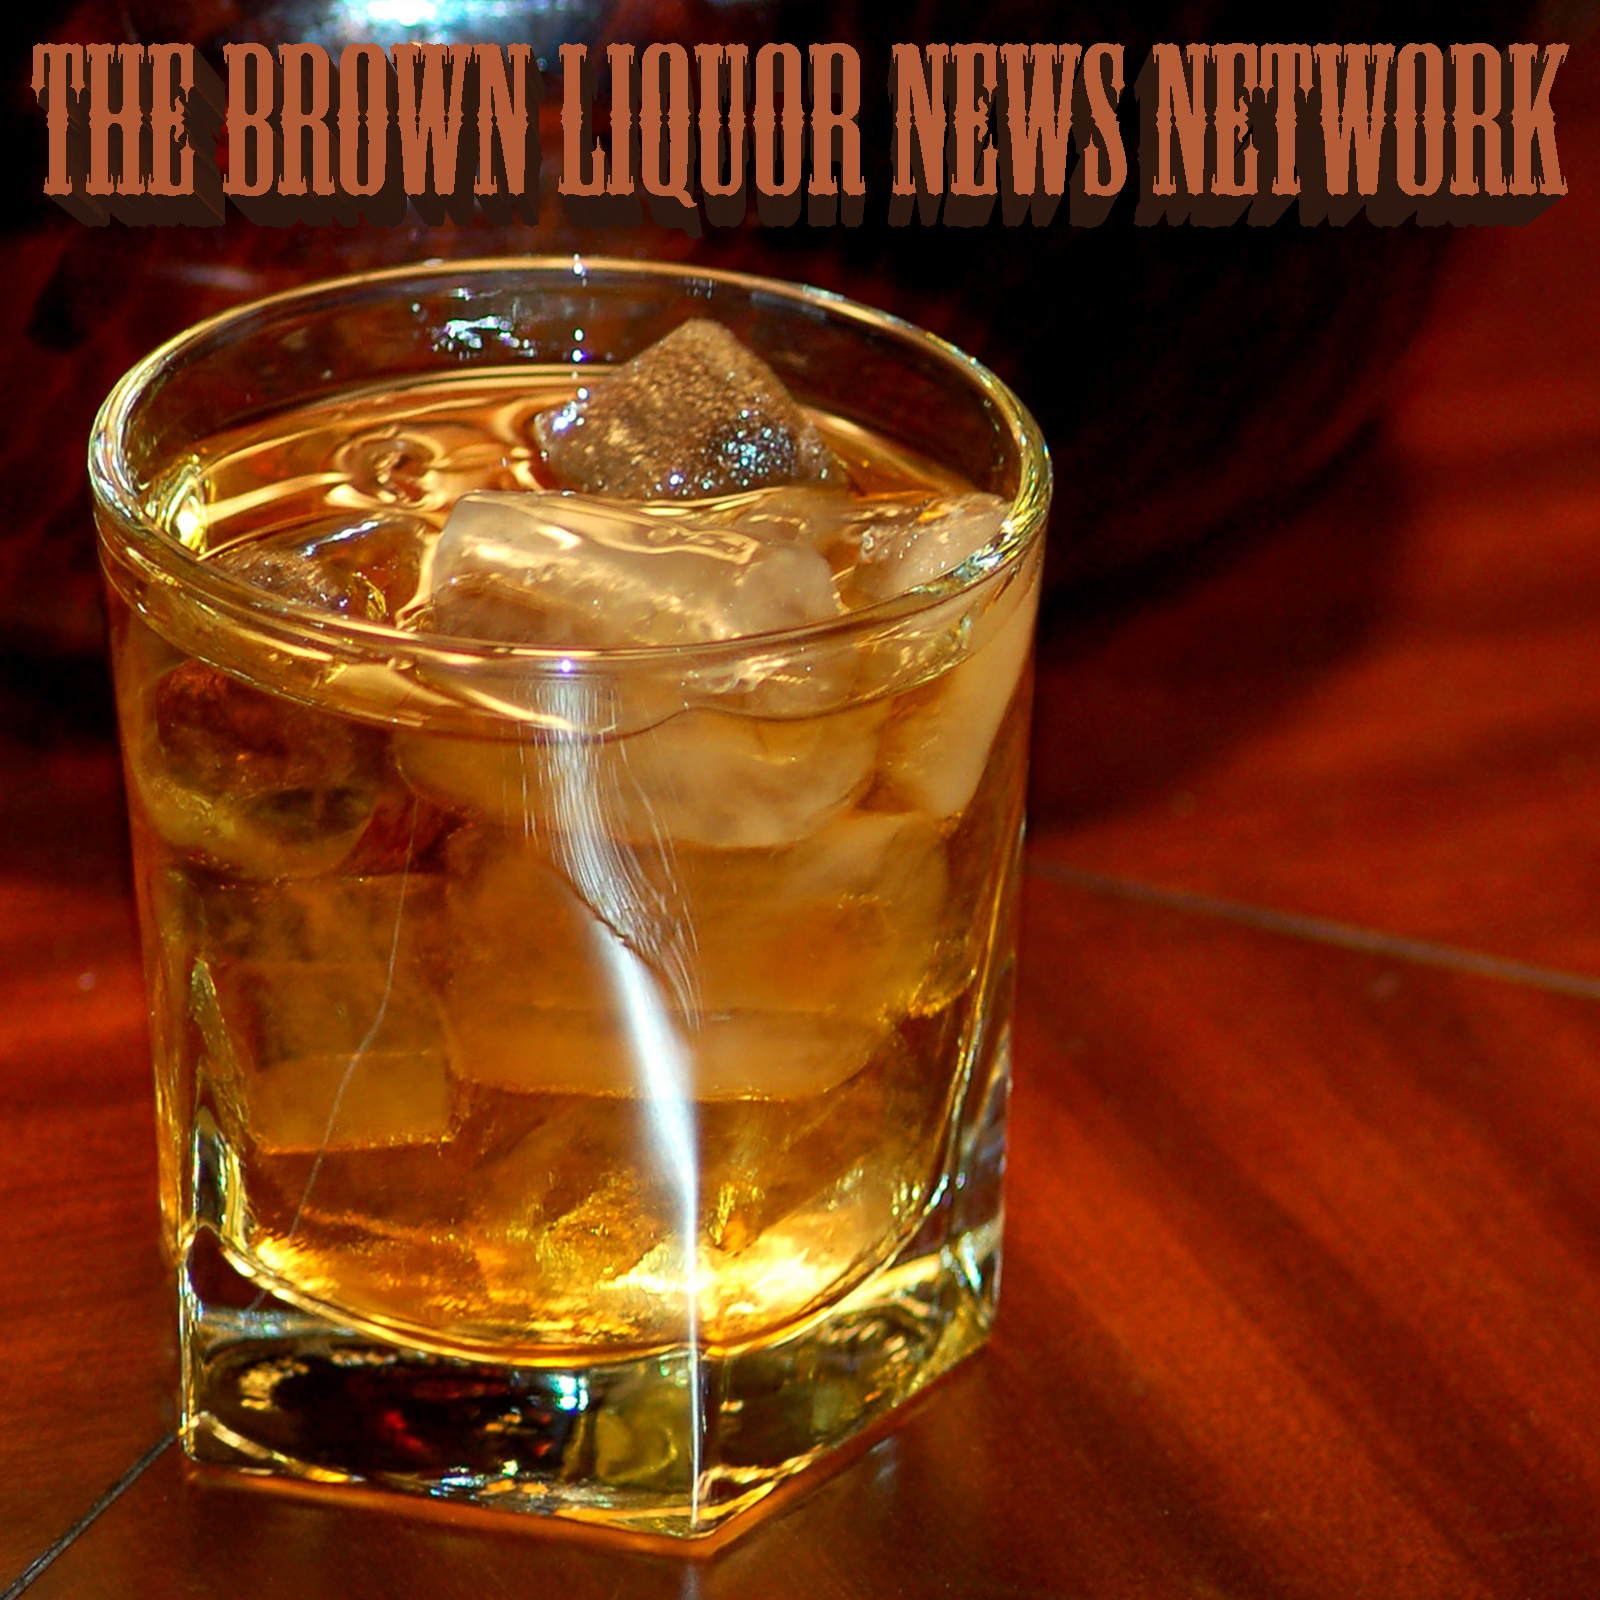 Brown Liquor News Network